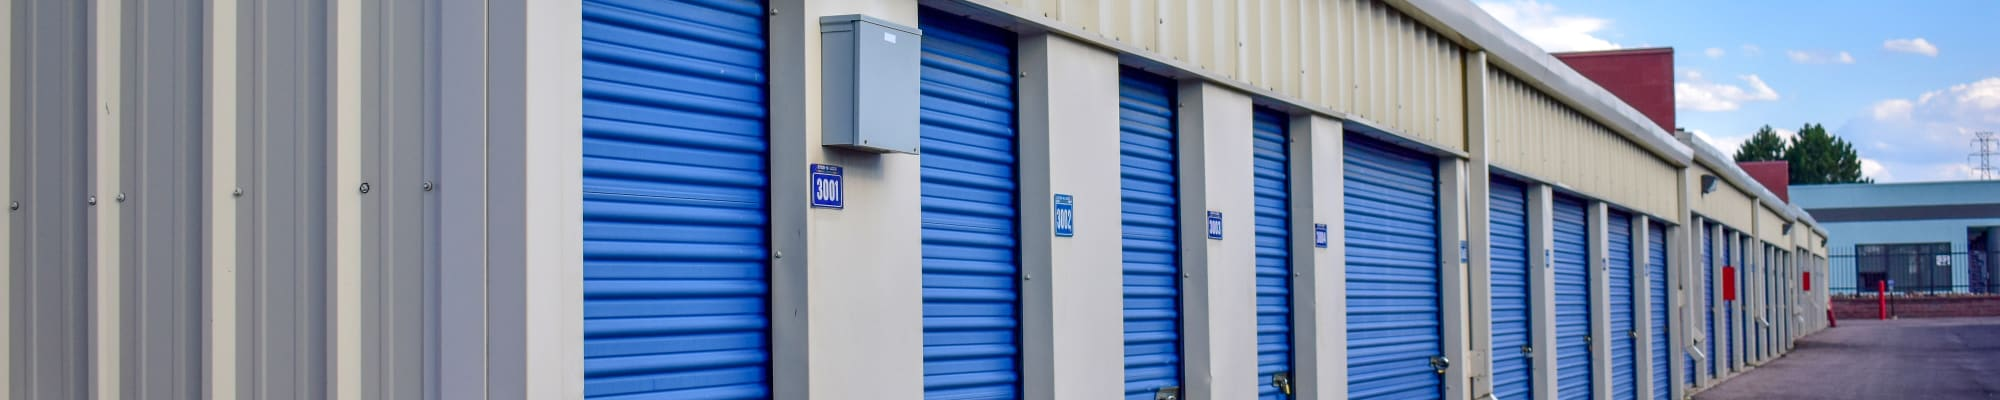 Contact us at STOR-N-LOCK Self Storage in Aurora, Colorado